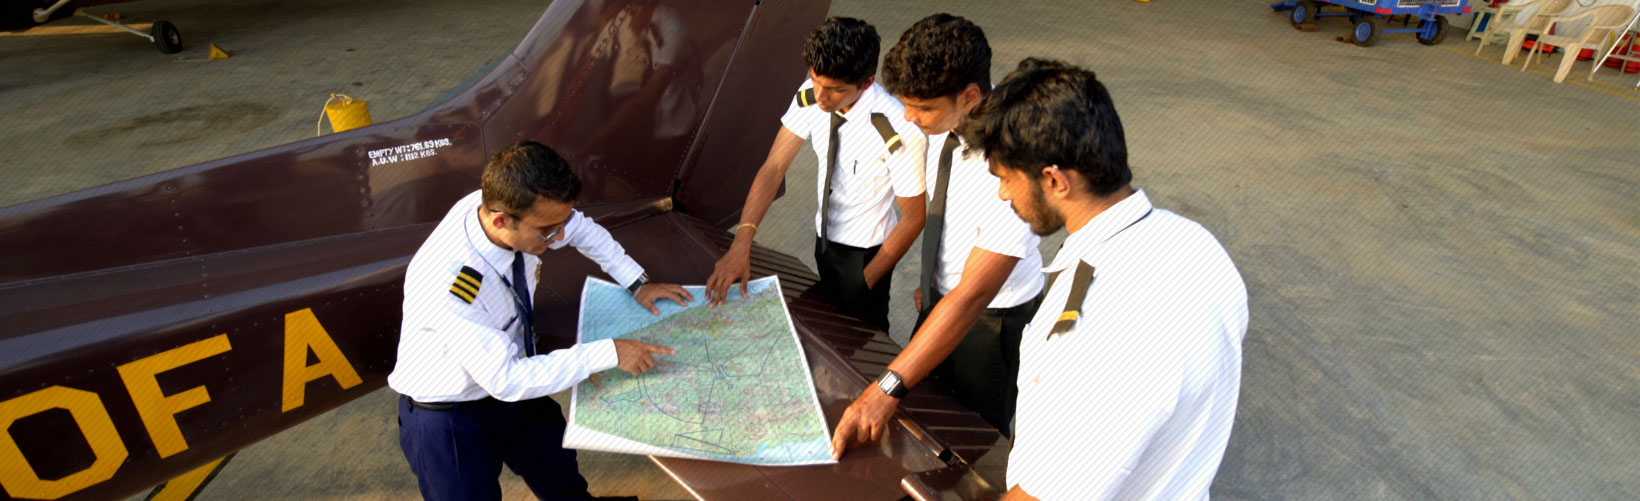 Refresher Course for Pilot Instructors